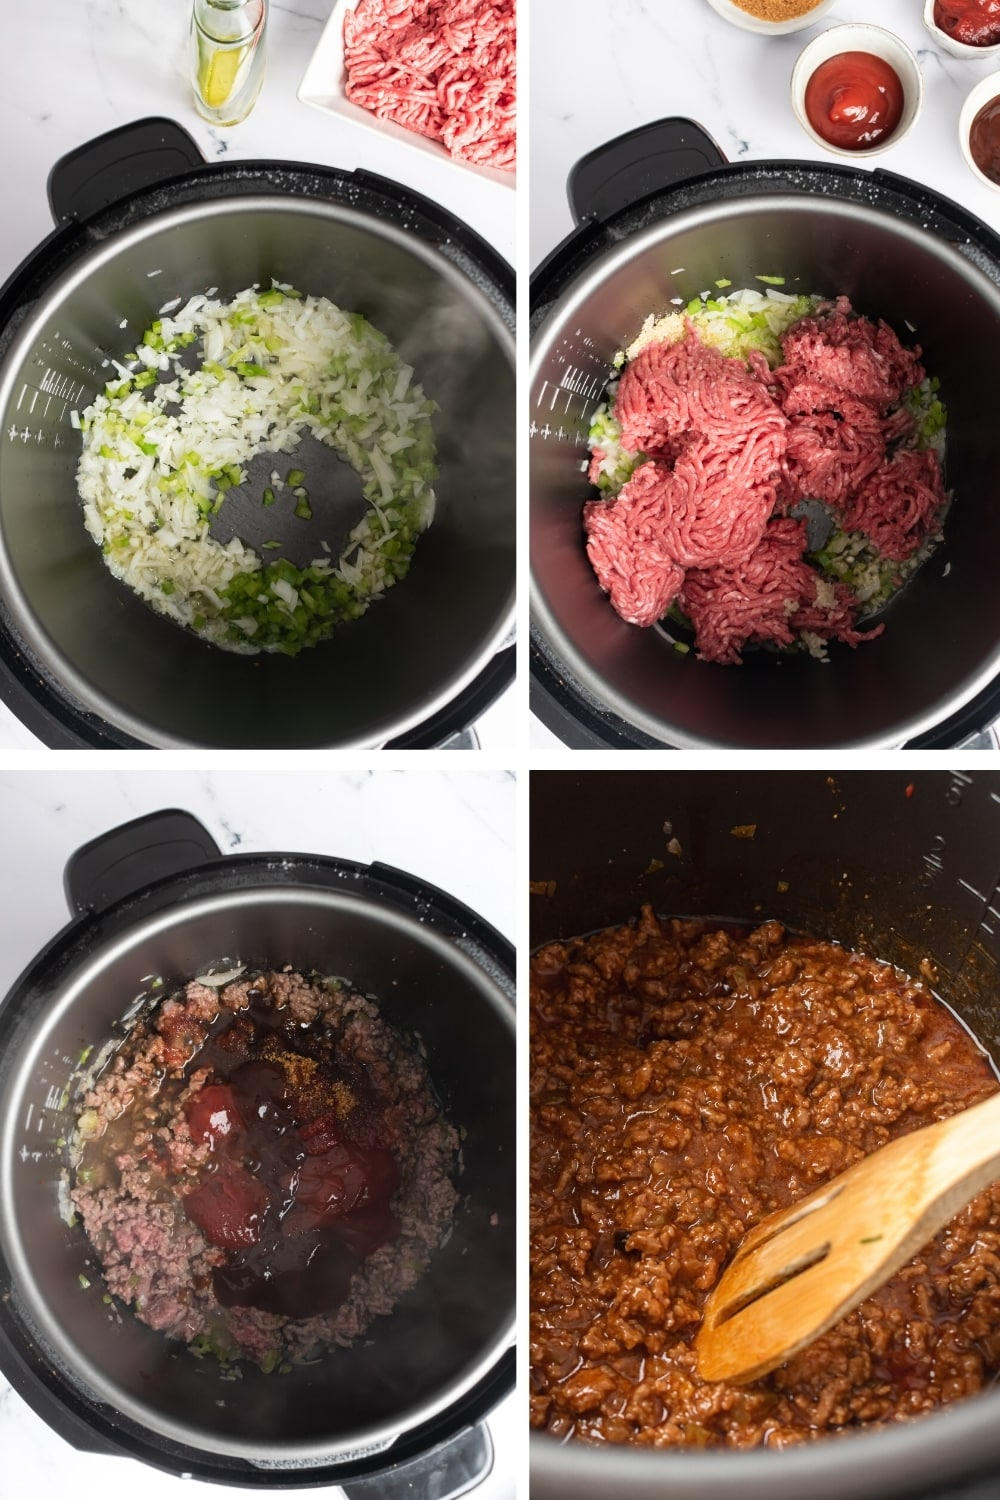 A four way split picture showing how to make sloppy joes in an instant pot.